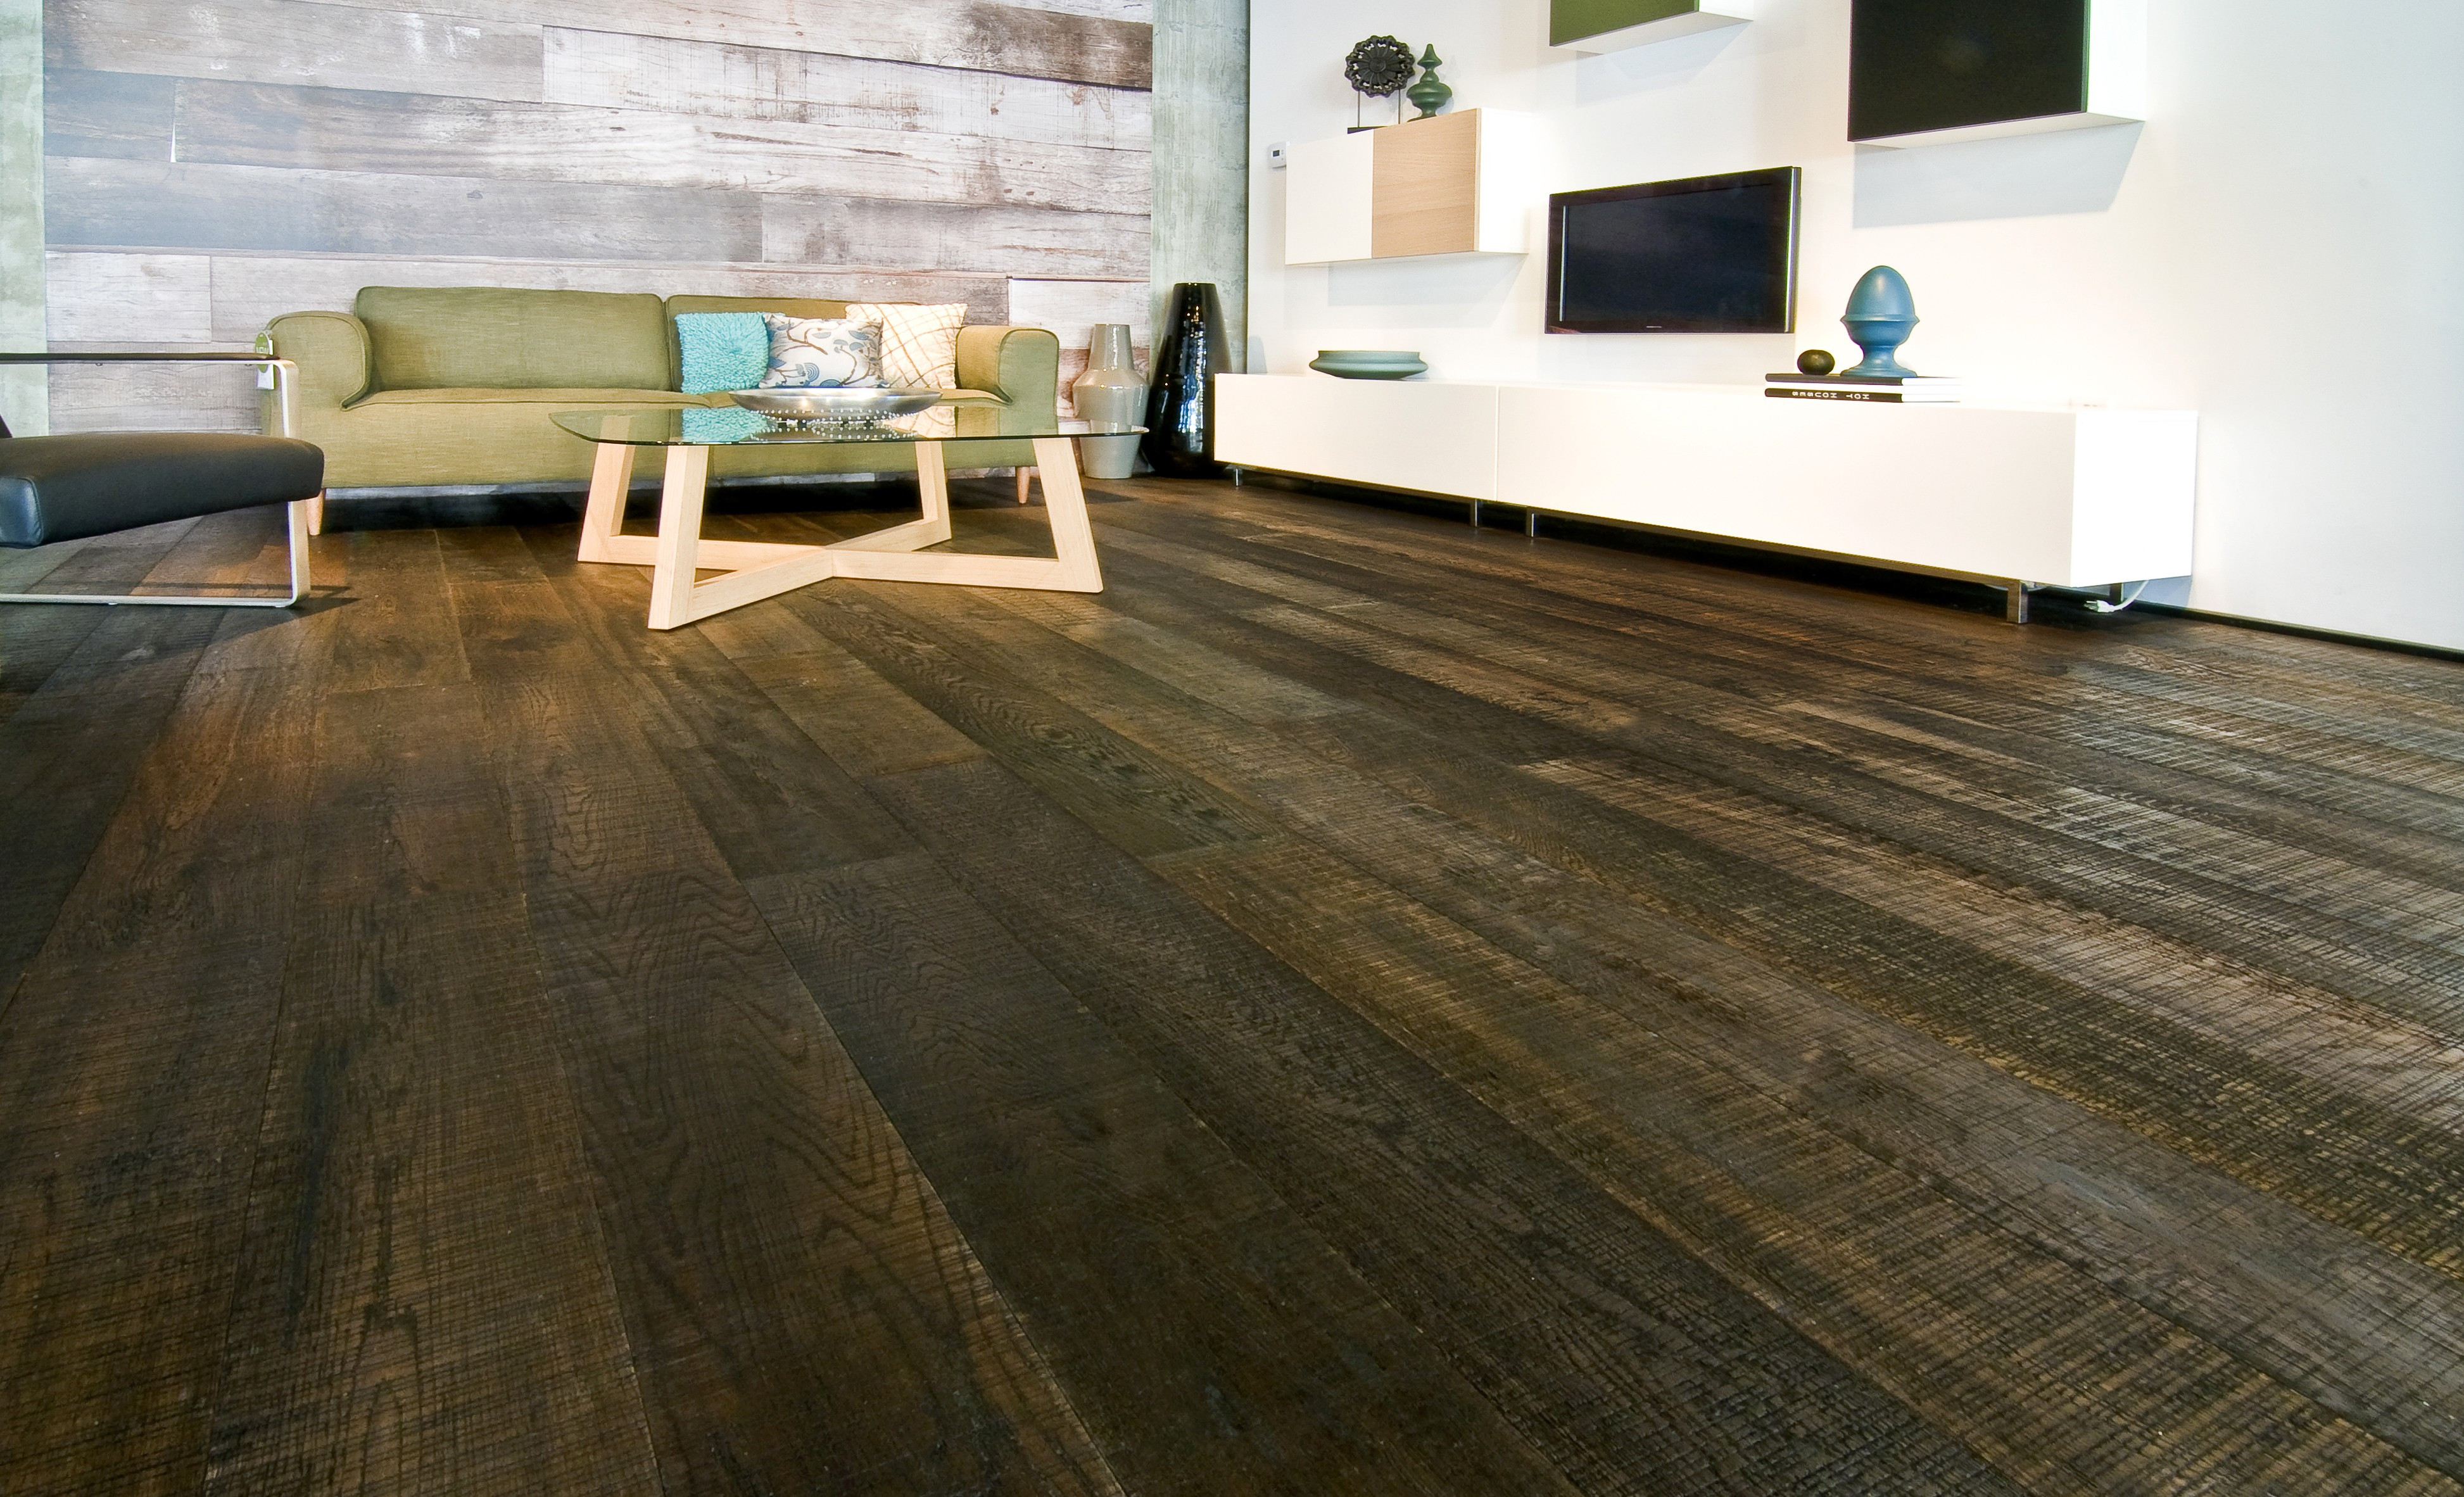 how to tell what hardwood floor you have of pierce flooring where to buy hardwood flooring inspirational 0d within pierce flooring where to buy hardwood flooring inspirational 0d grace place barnegat